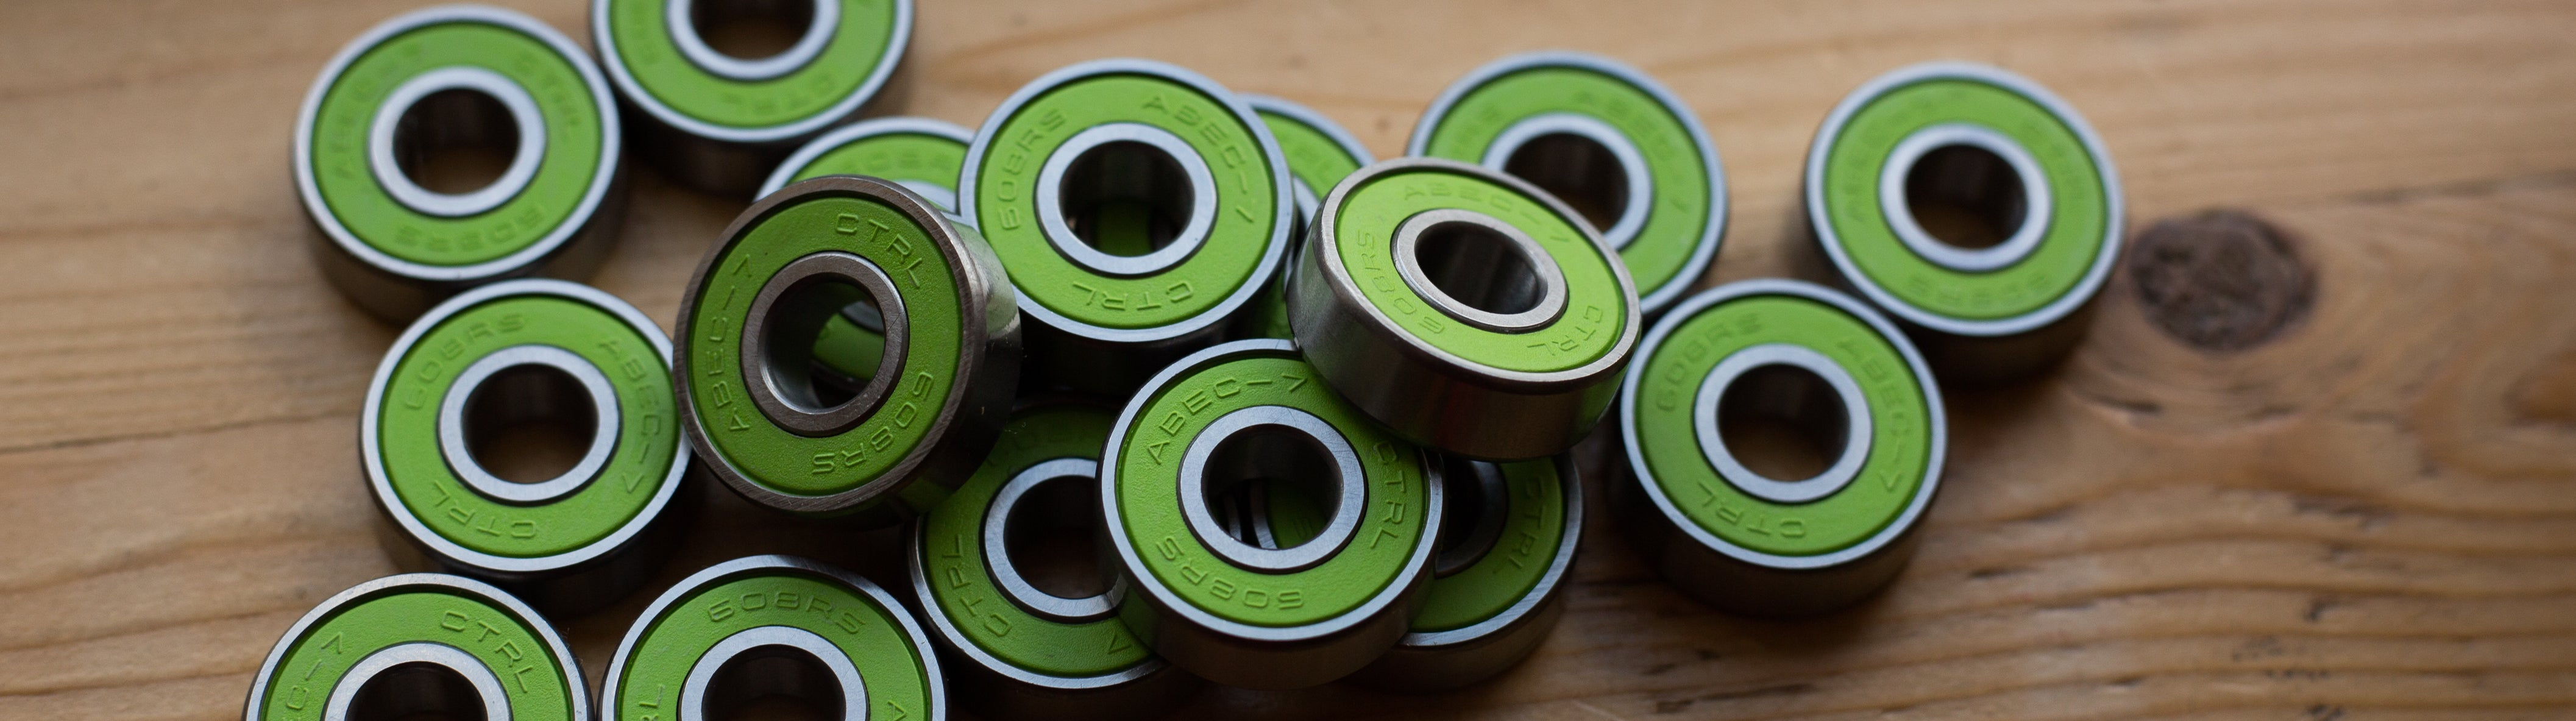 Skateboard Bearings Ottawa